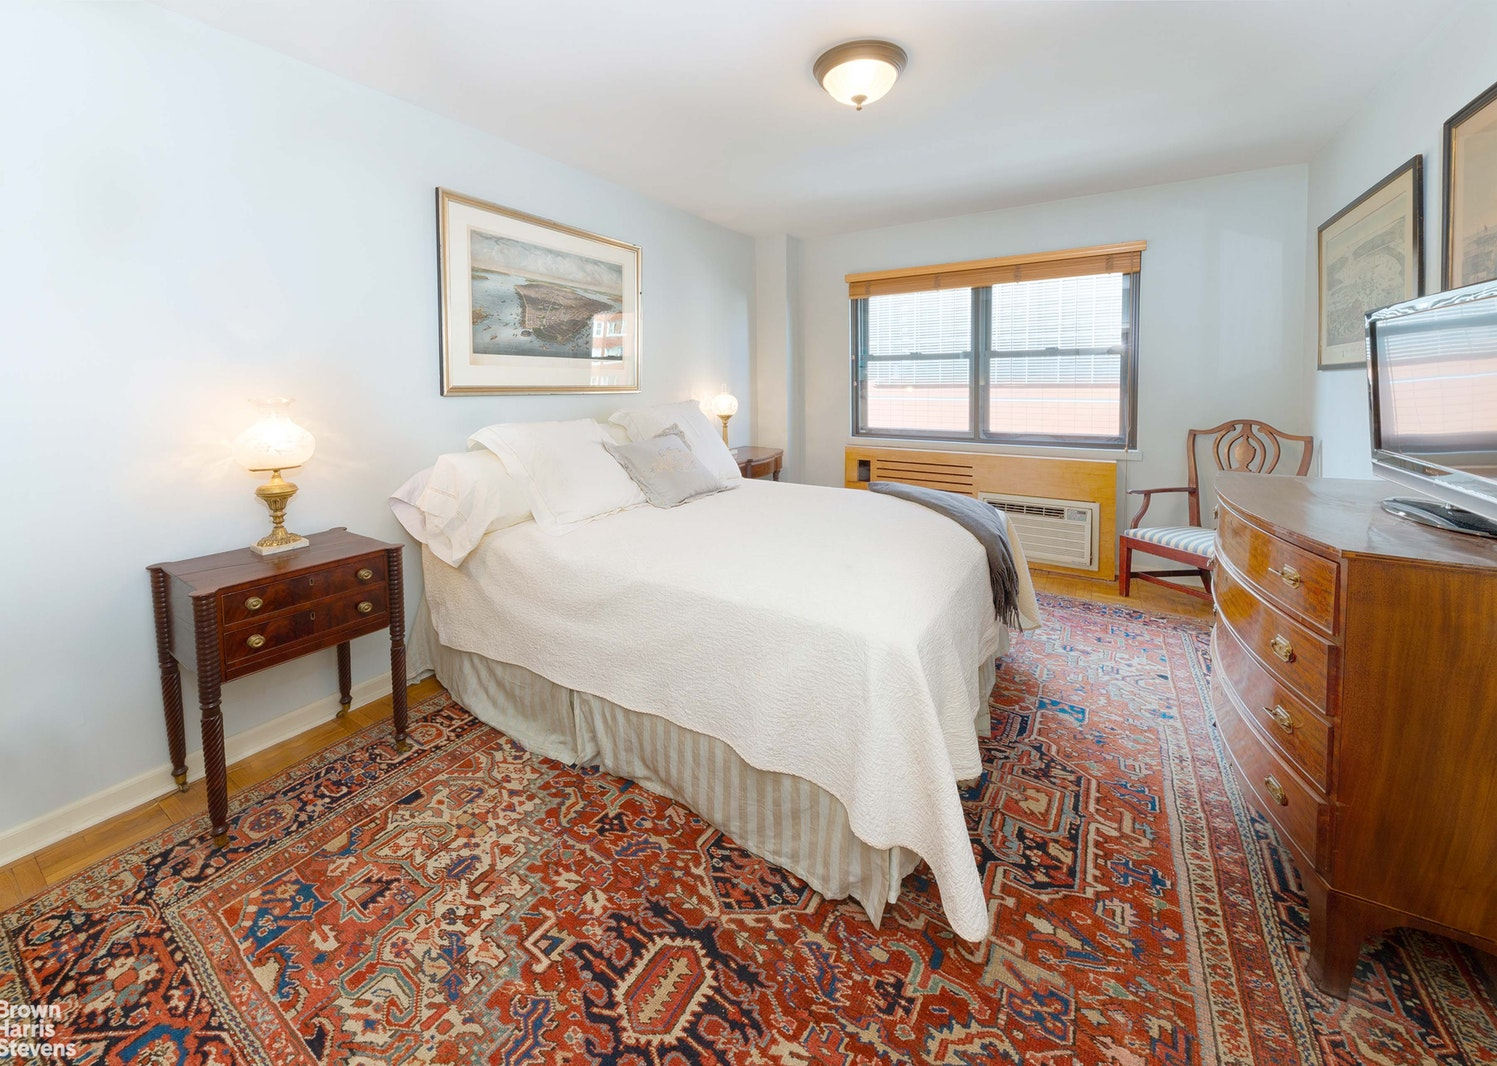 305 East 72nd Street 5f, Upper East Side, NYC, 10021, $649,000, Property For Sale, Halstead Real Estate, Photo 5